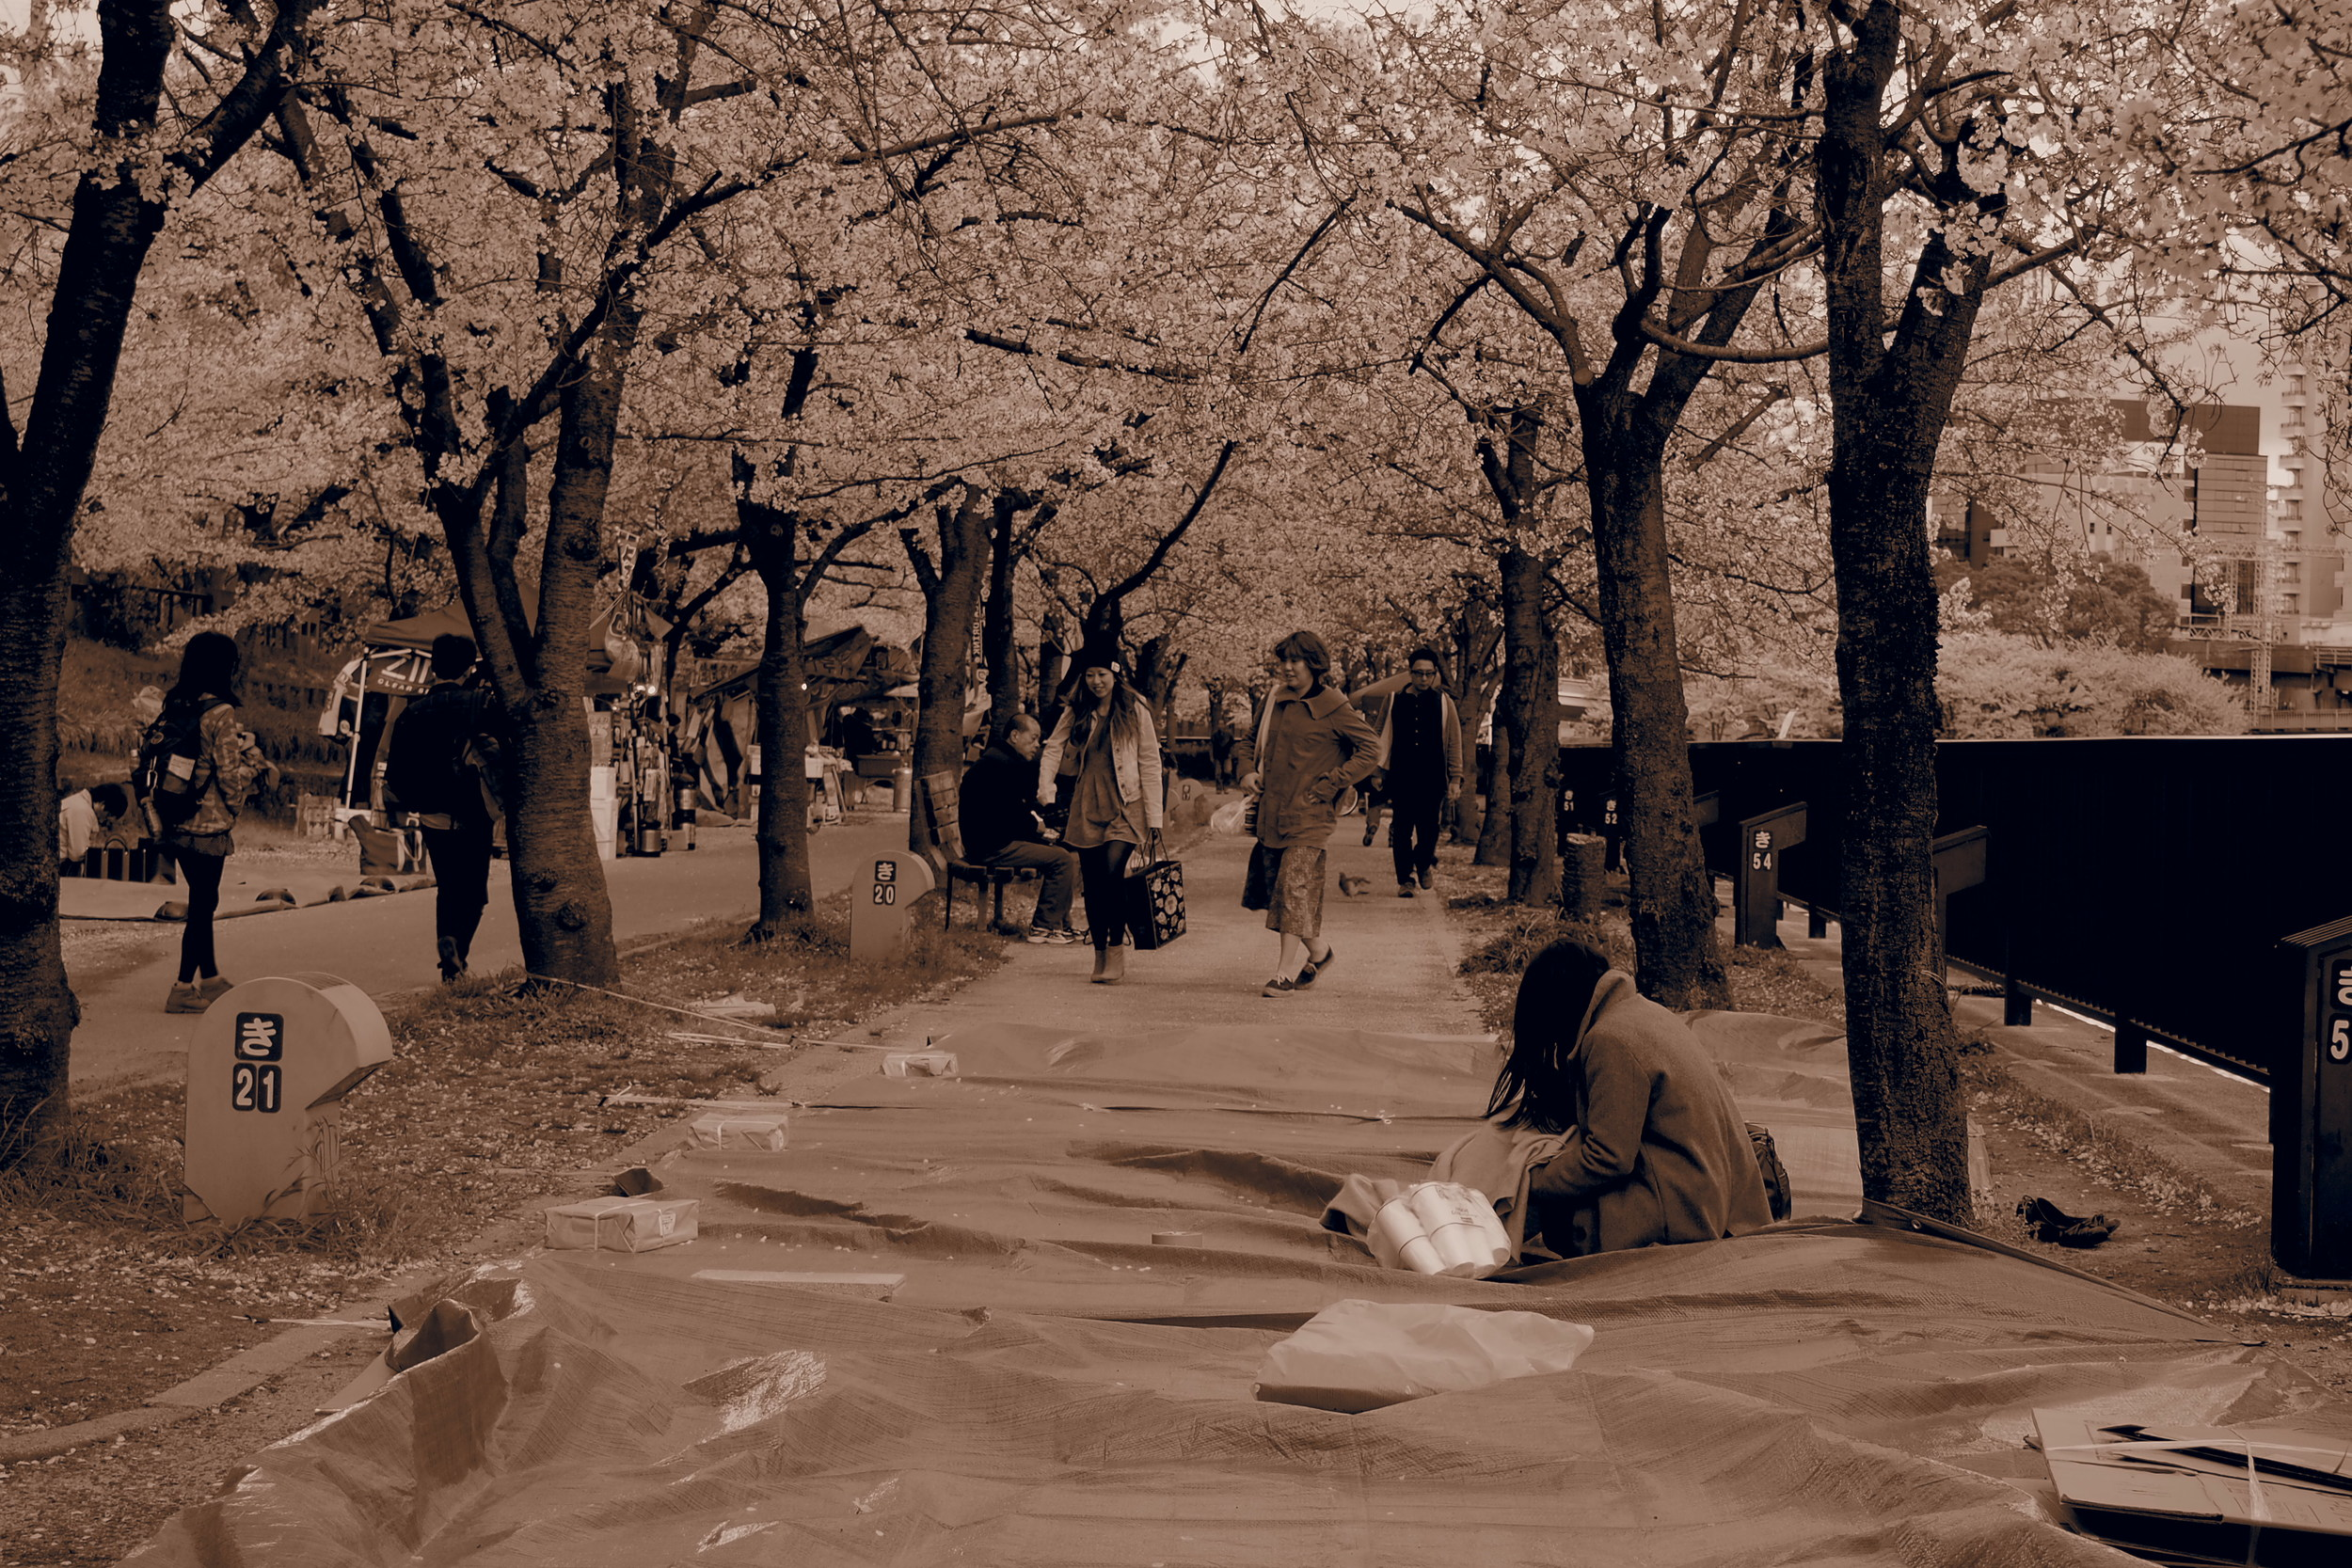 Tarps spread on the ground for people to hanami (flower watch).